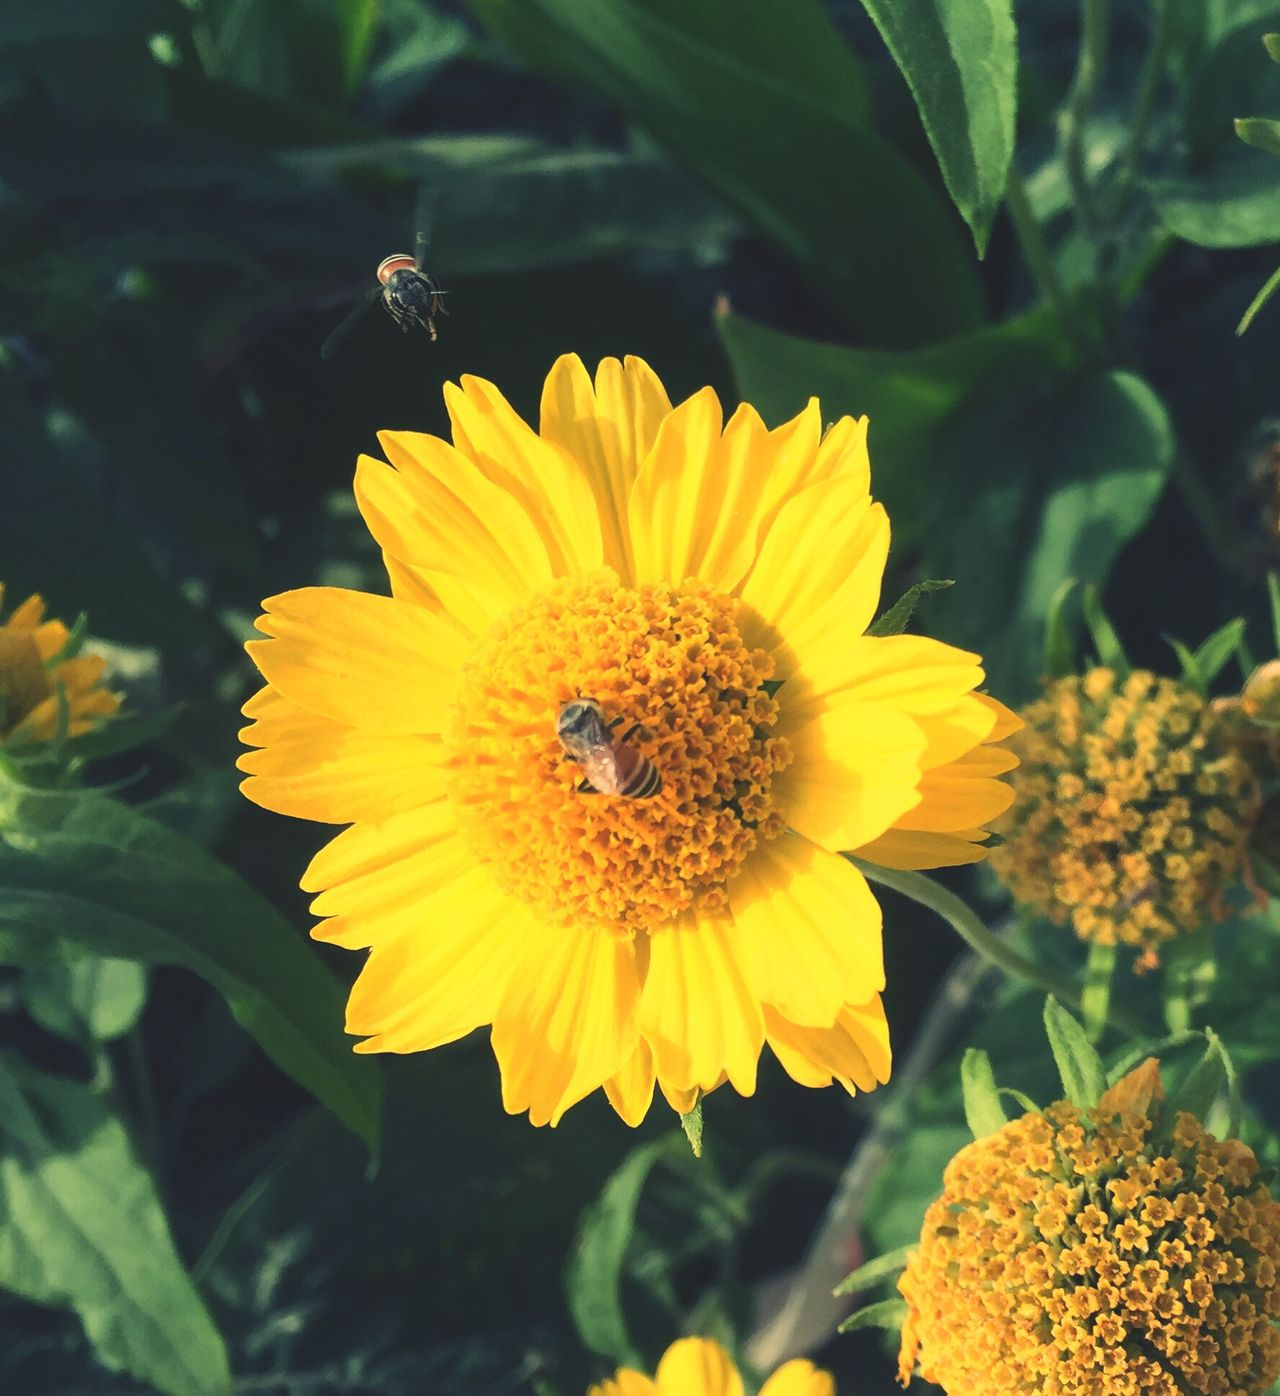 Flower Insect Beauty In Nature Yellow Nature Petal Fragility Flower Head Plant Bee Freshness Pollination Blooming Animal Themes Animals In The Wild One Animal Growth Outdoors No People